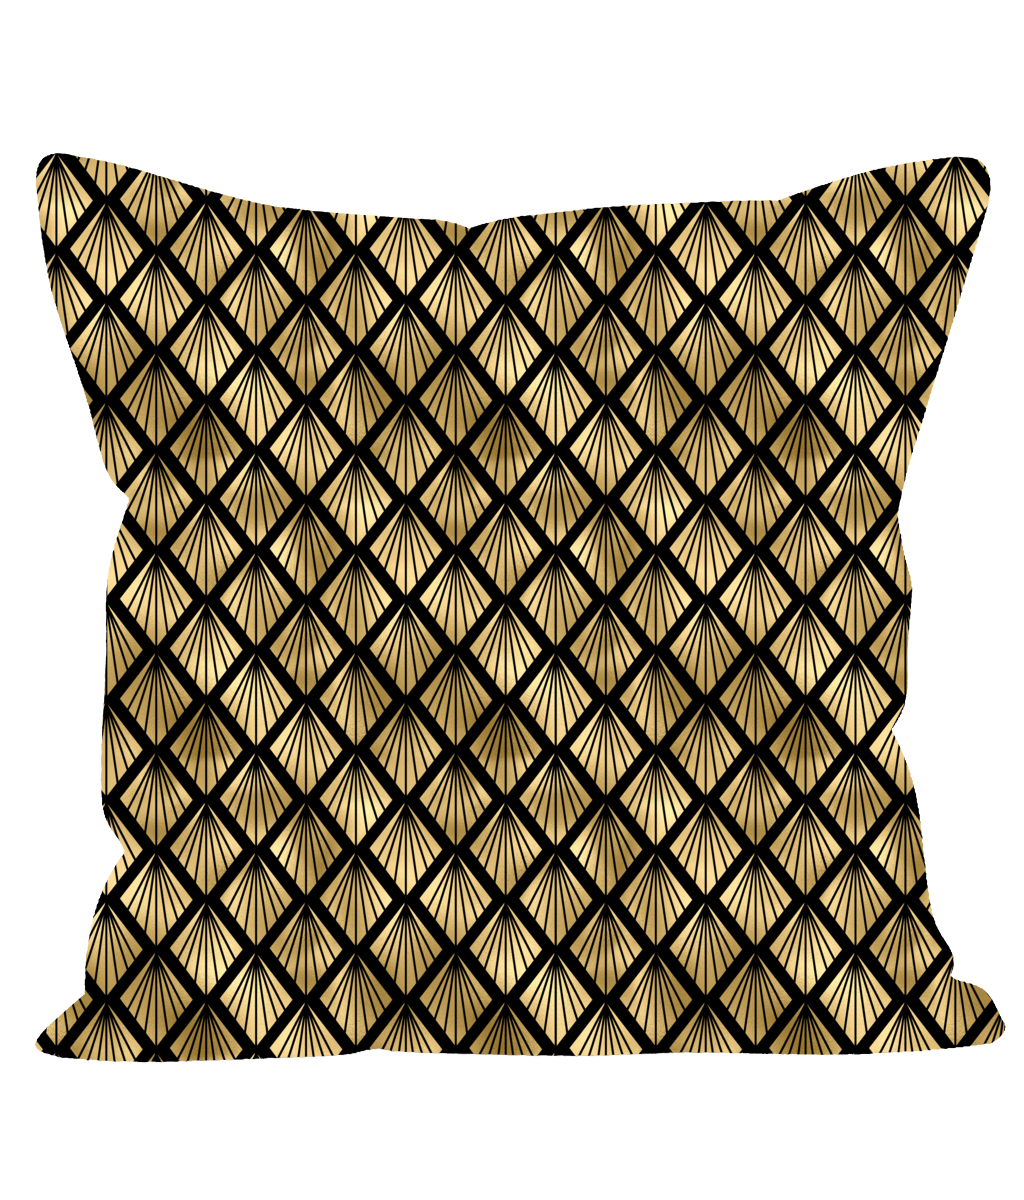 Retro Vintage Art Deco Cushion in Black and Gold. 1920's Style Throw Cushion.